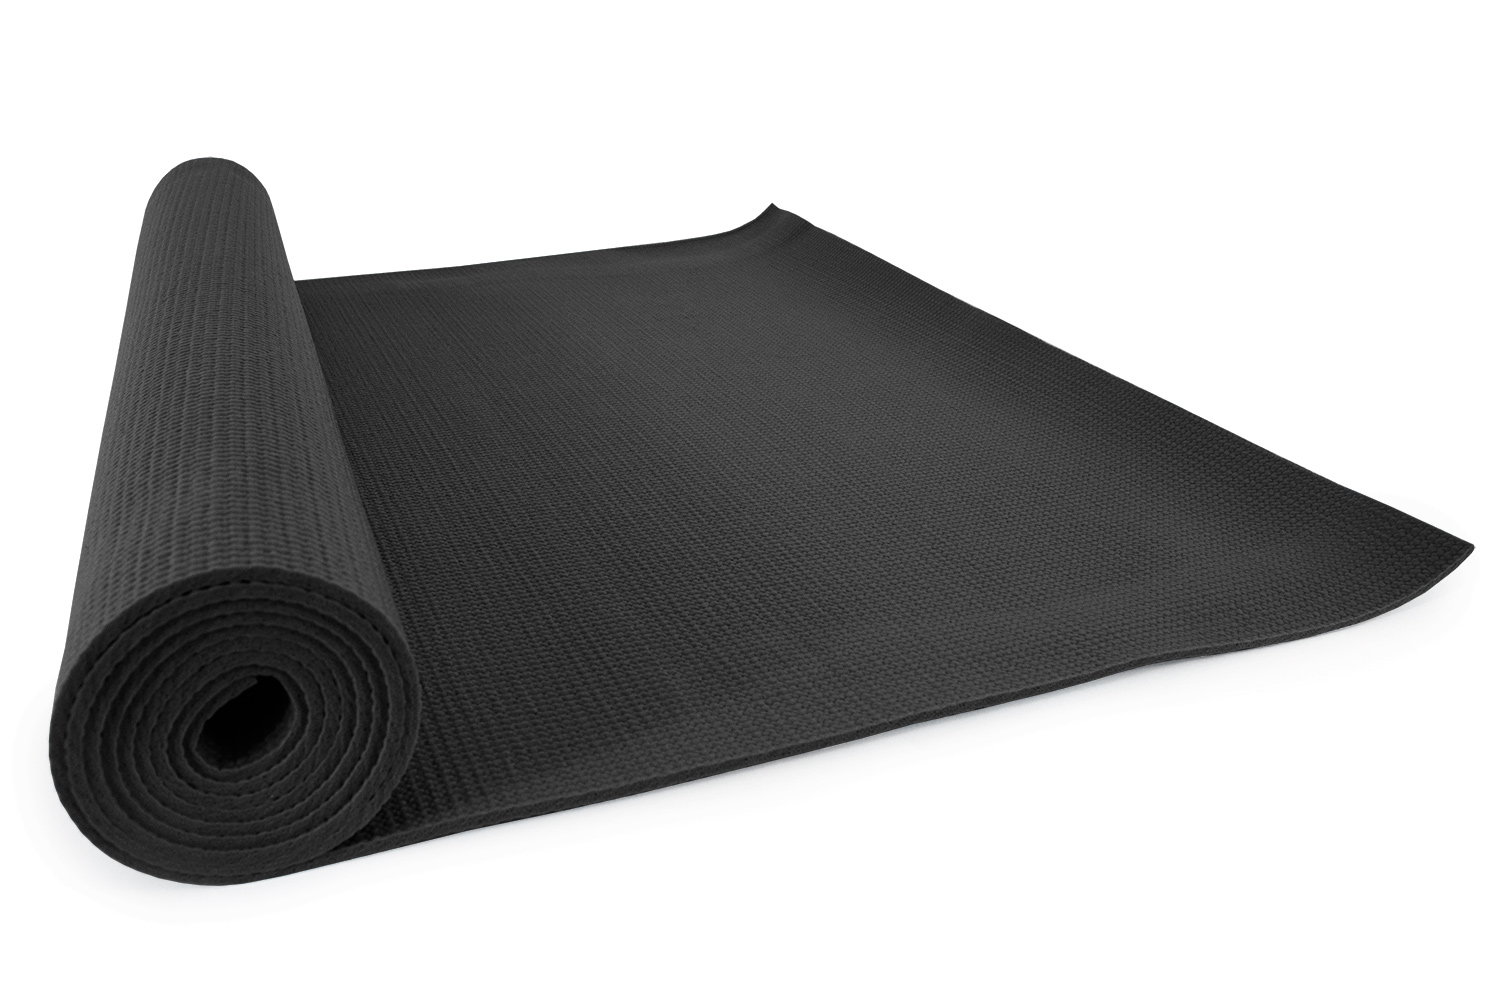 Prosource Classic Yoga Mat 1 8 Thick Extra Long 72 Inch